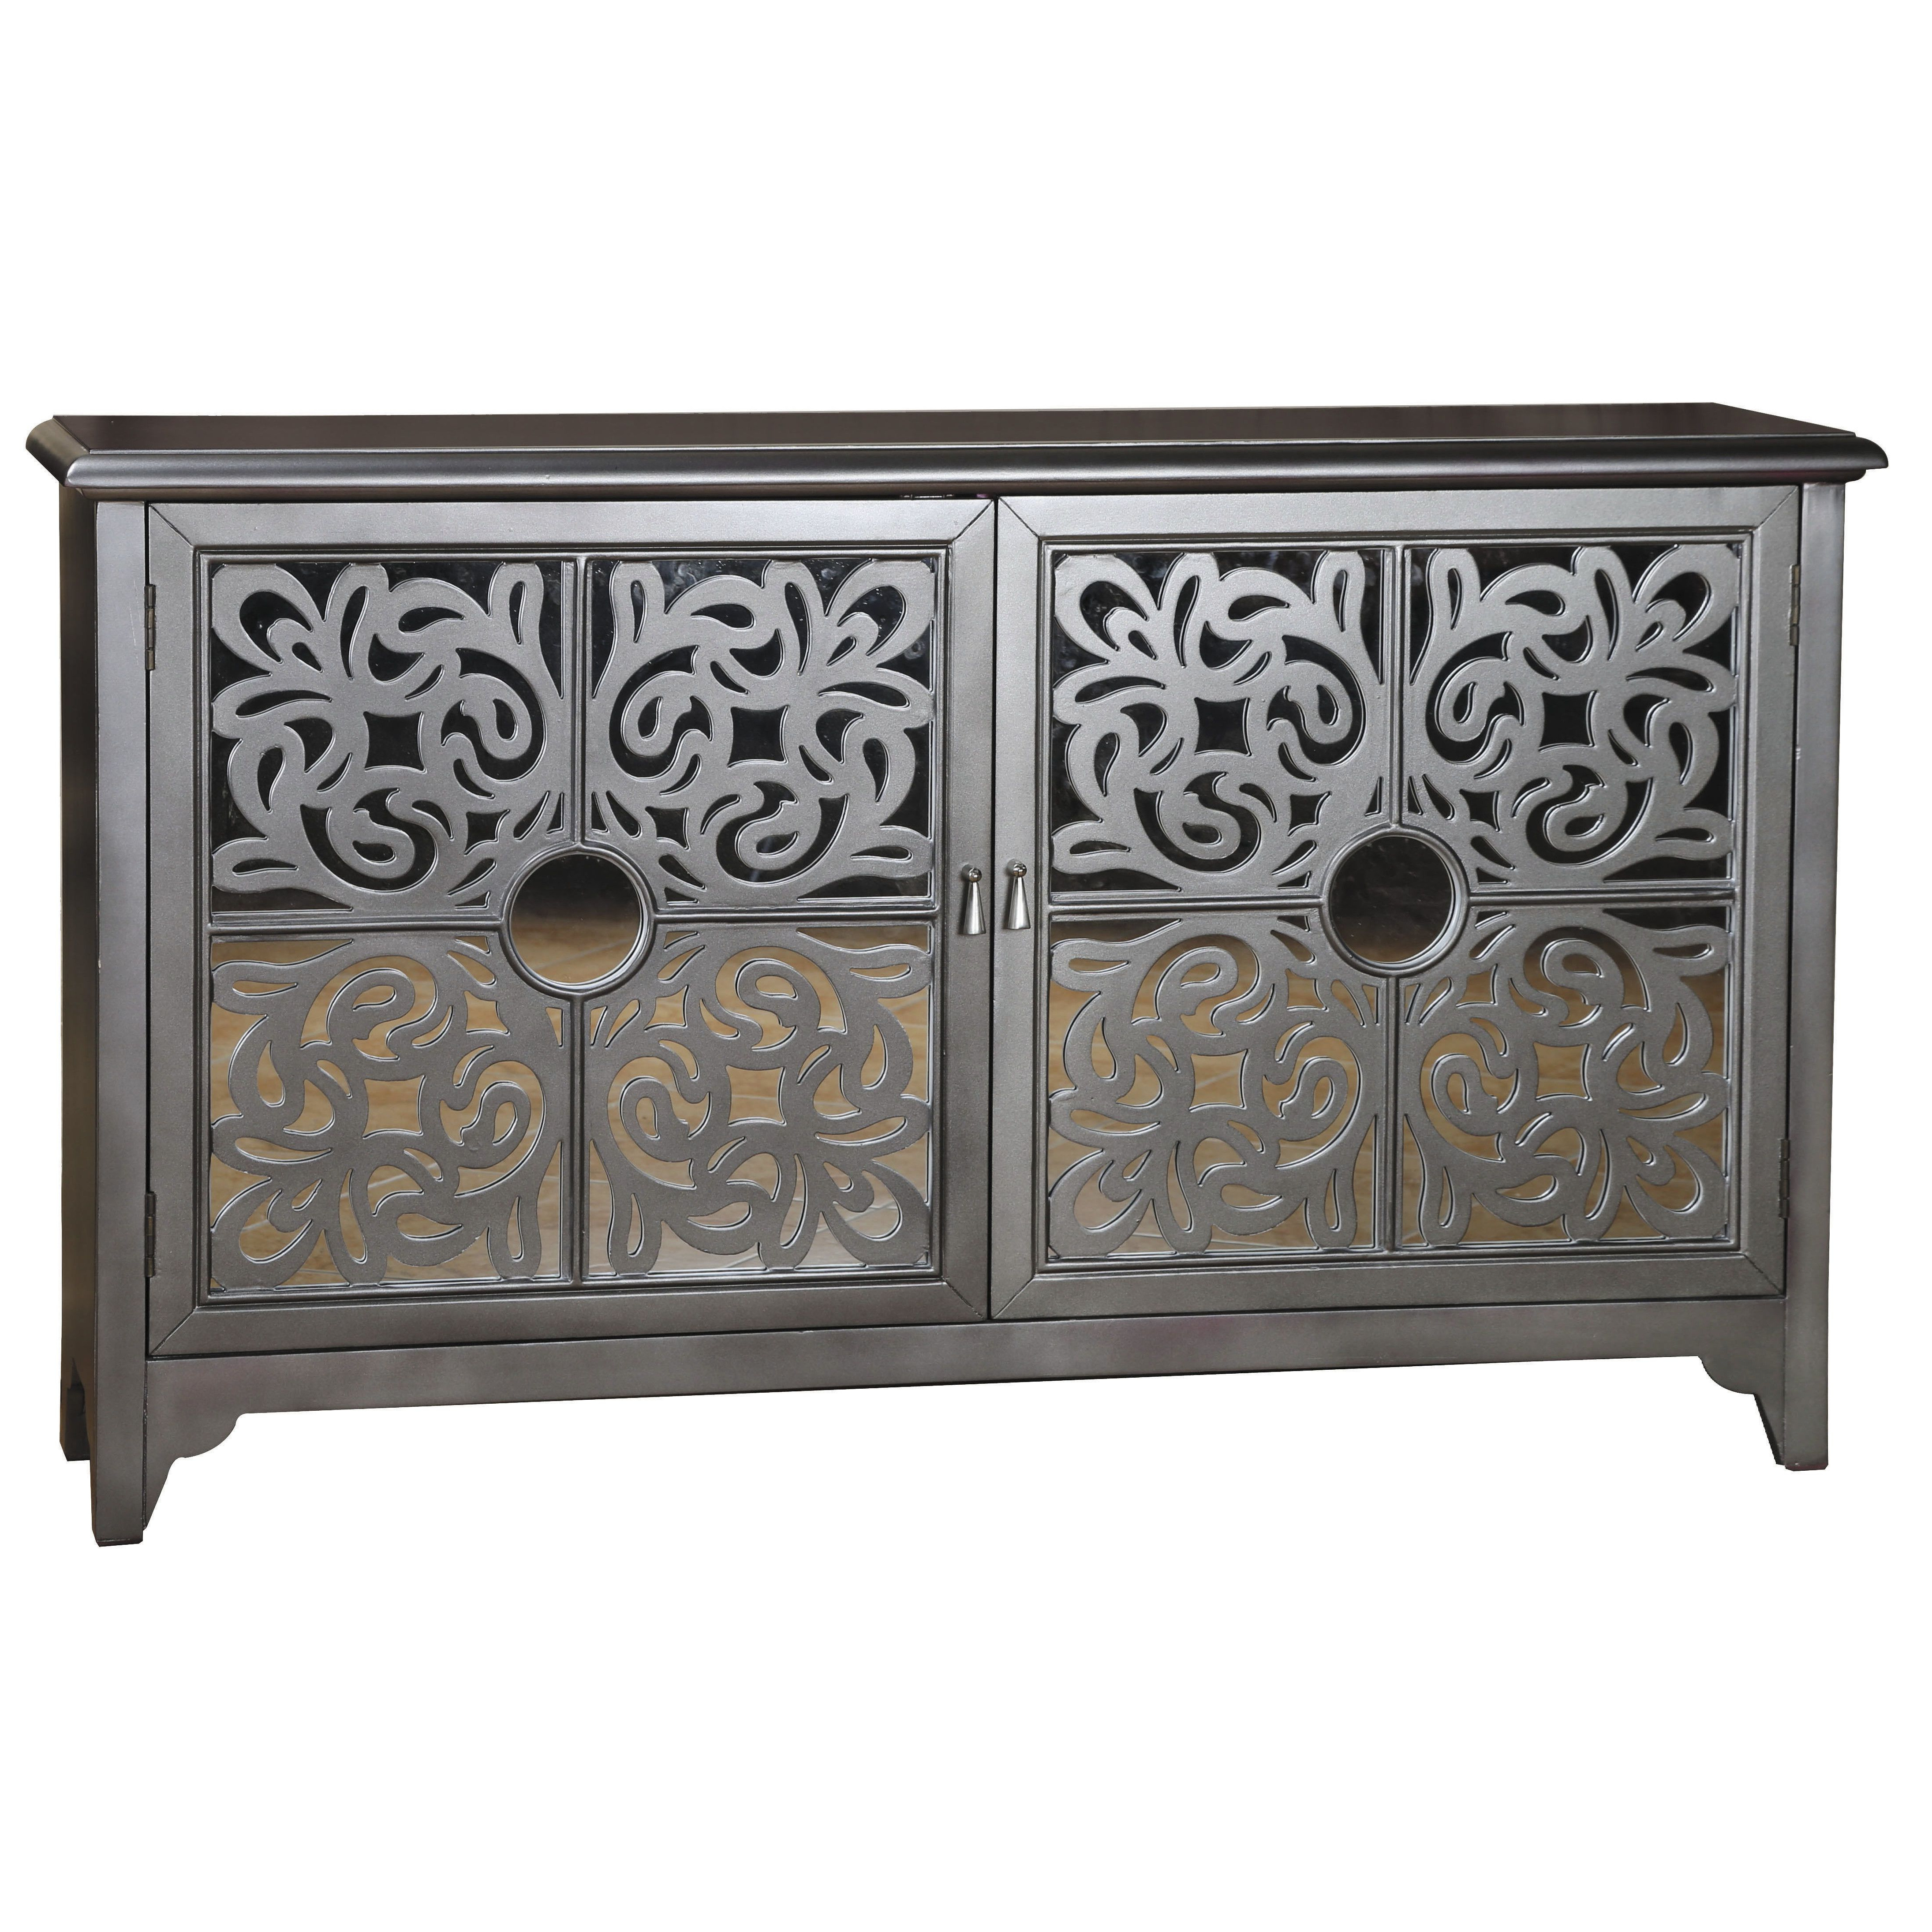 Pulaski Furniture Royal 2 Door Credenza | For The Home For Dillen Sideboards (View 14 of 20)